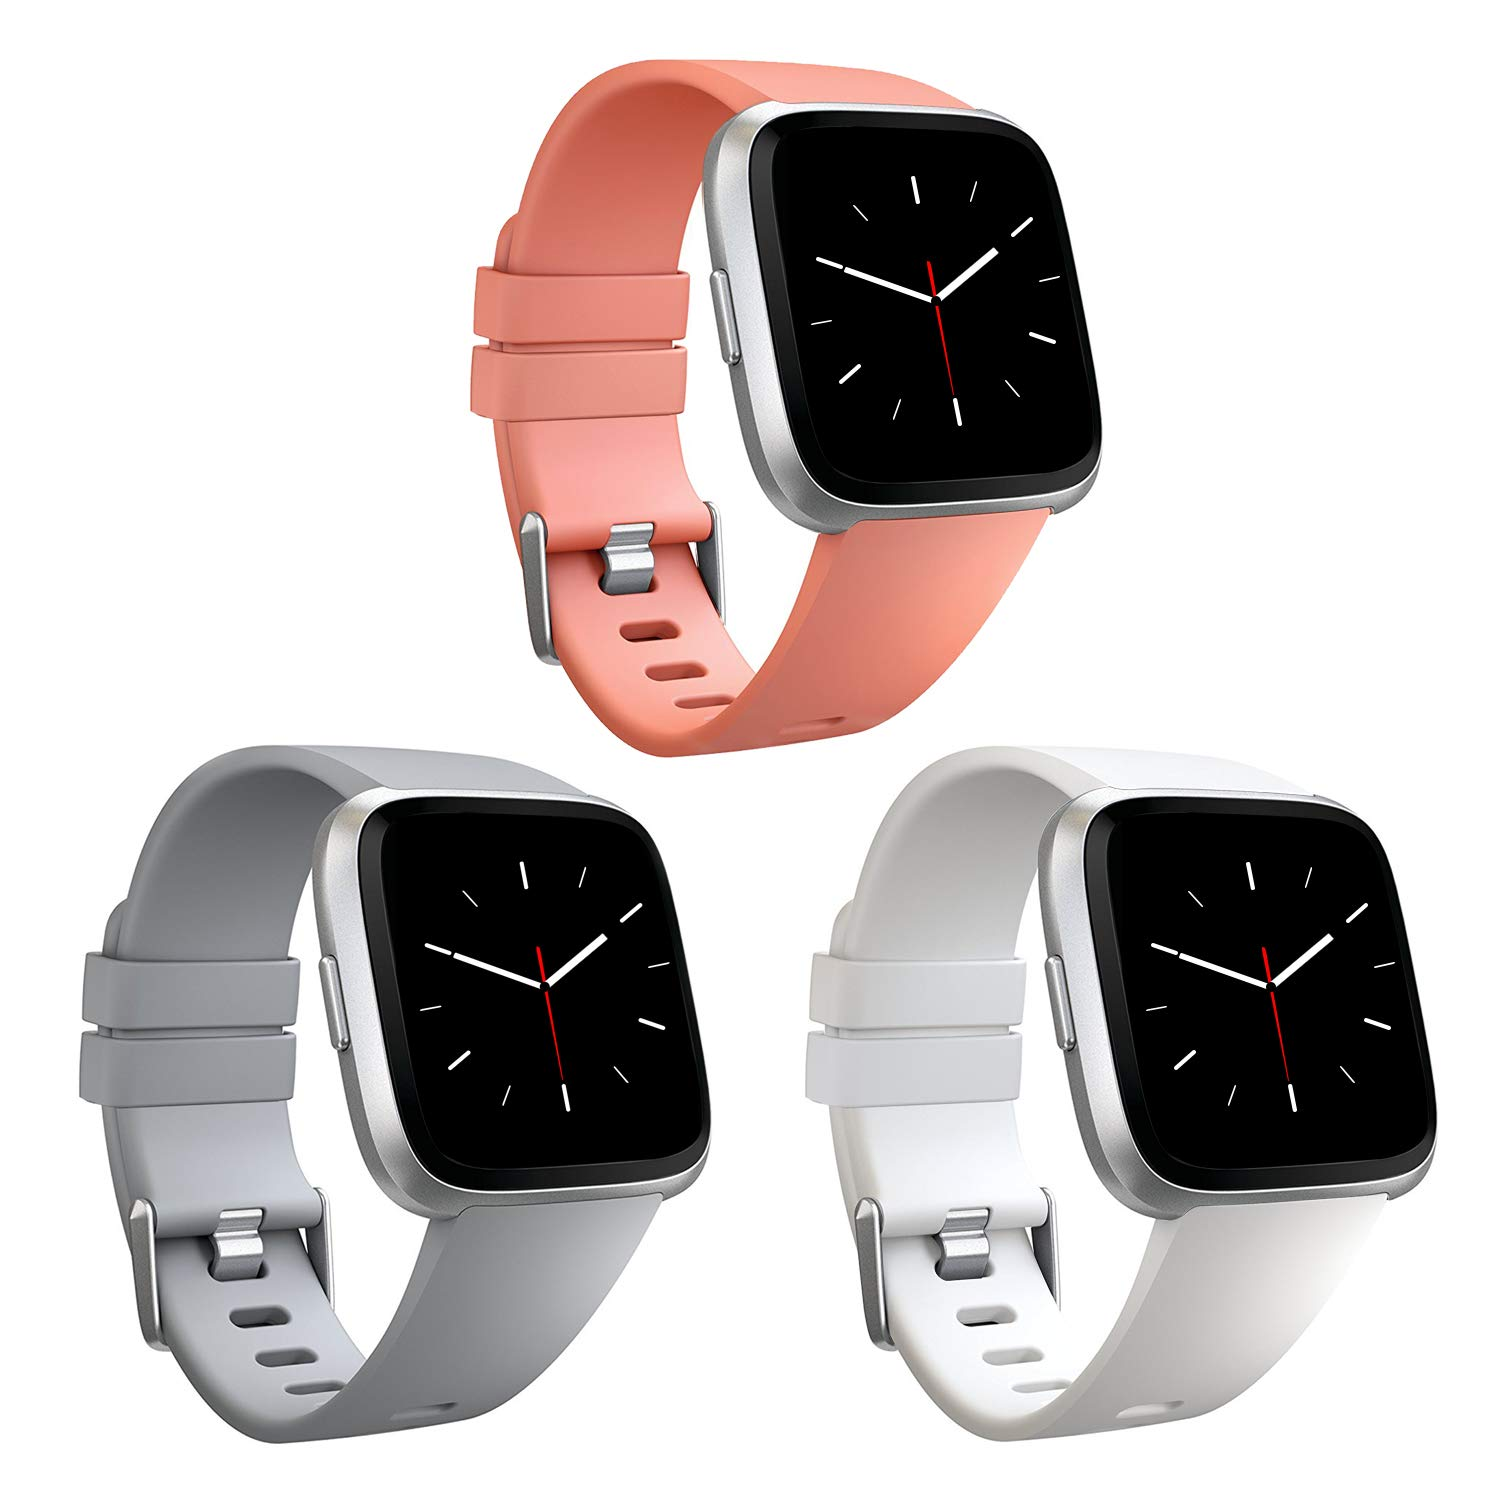 AK Compatible for Fitbit Versa/Fitbit Versa 2/Versa Lite Strap, Adjustable Replacement Sport Wristband for Fitbit Versa/Fitbit Versa 2/Fitbit Versa Lite Edition Small Large